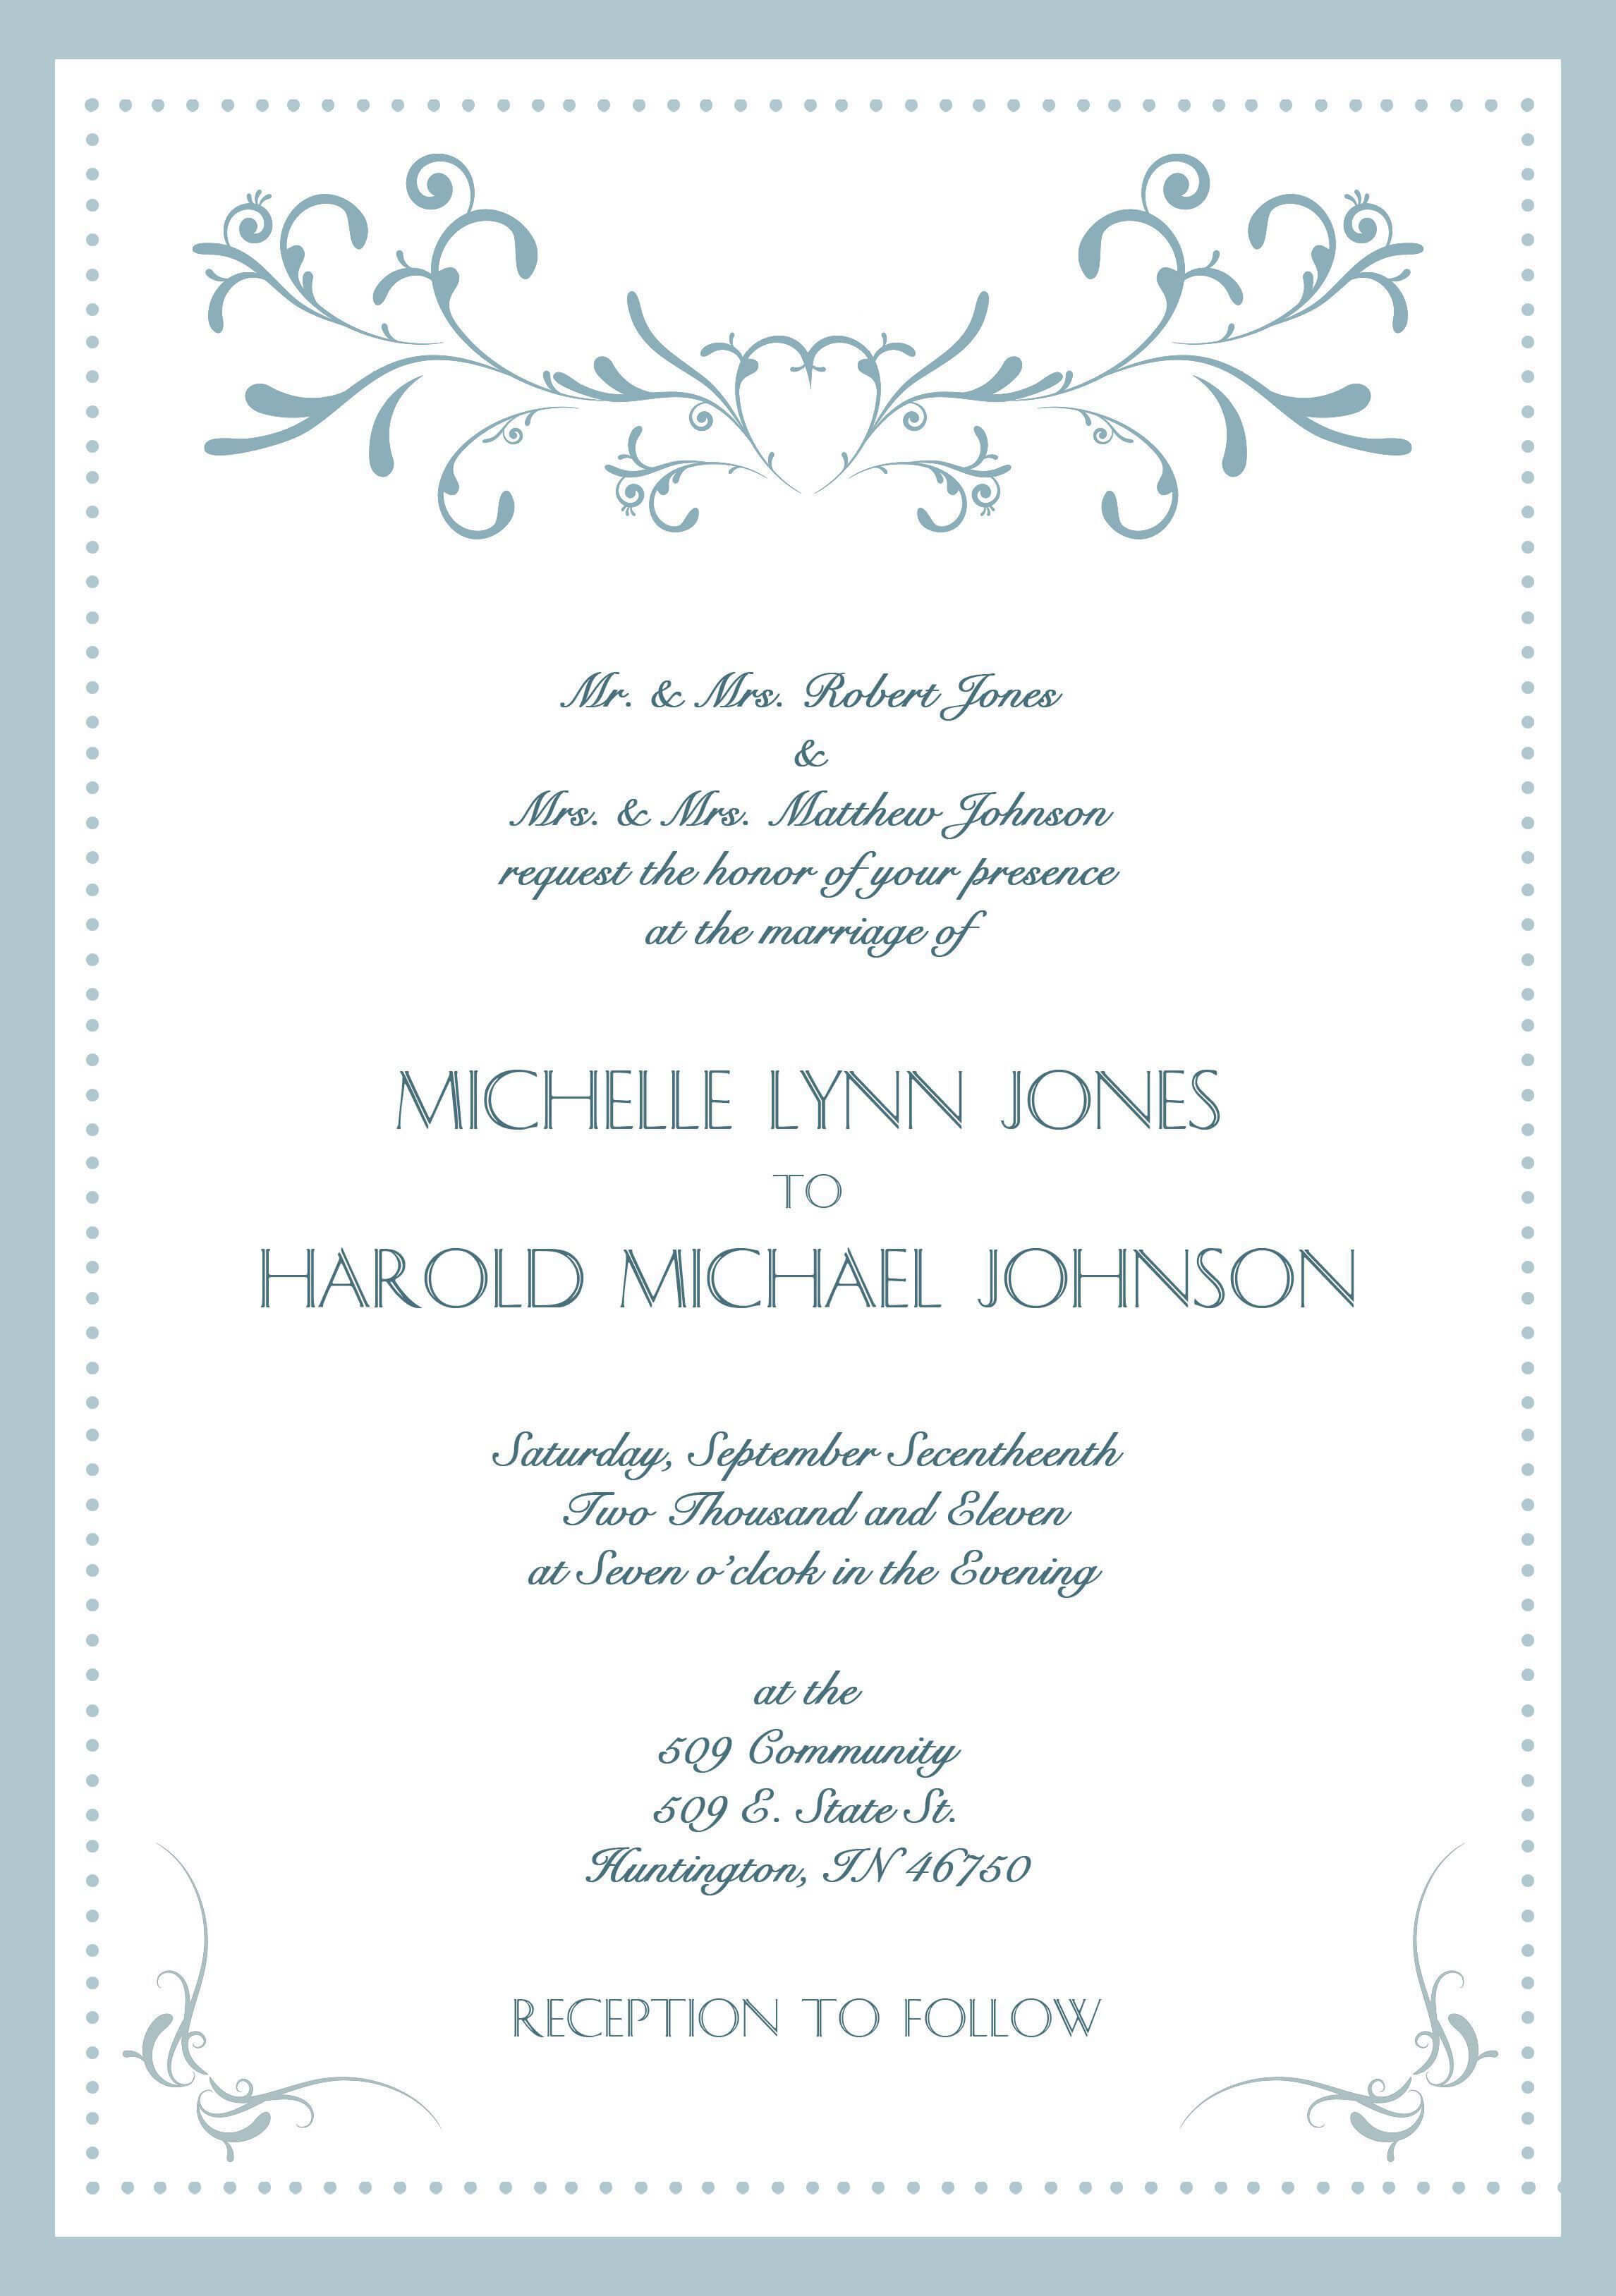 Sample-Wedding-Invitation-Cards-In-English | Wedding in Sample Wedding Invitation Cards Templates